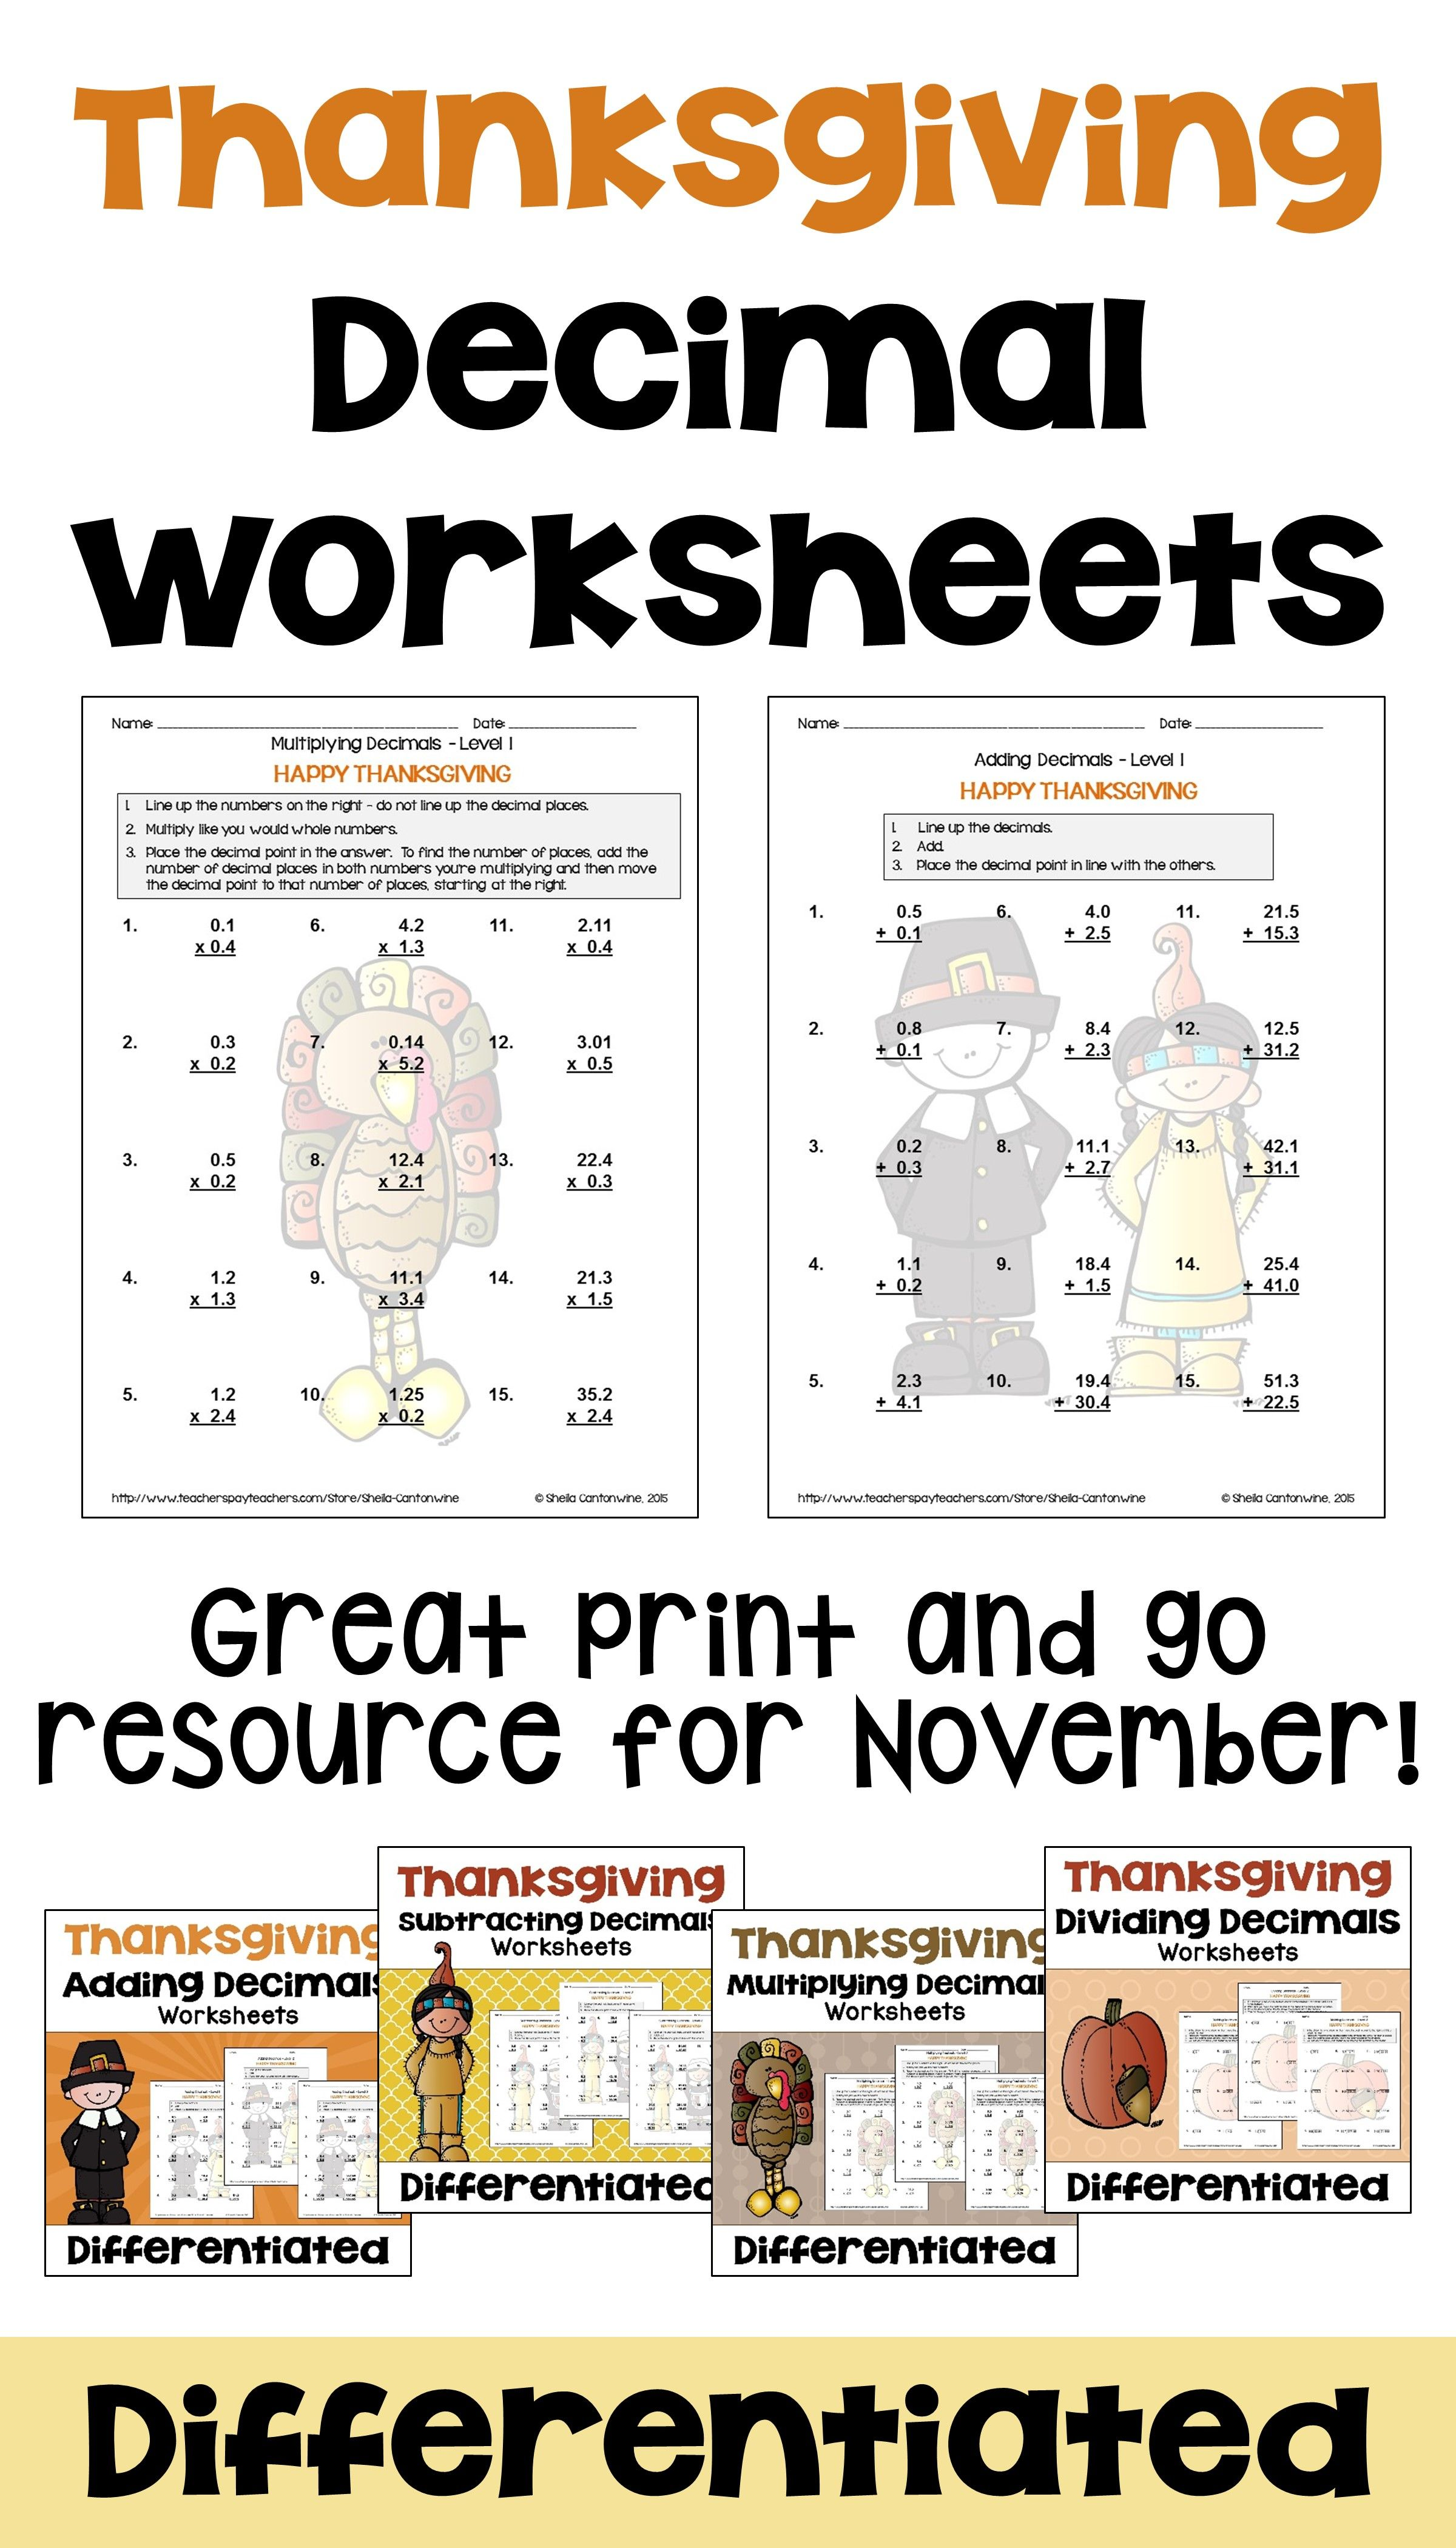 7th Grade Thanksgiving Worksheets   Printable Worksheets and Activities for  Teachers [ 4200 x 2400 Pixel ]